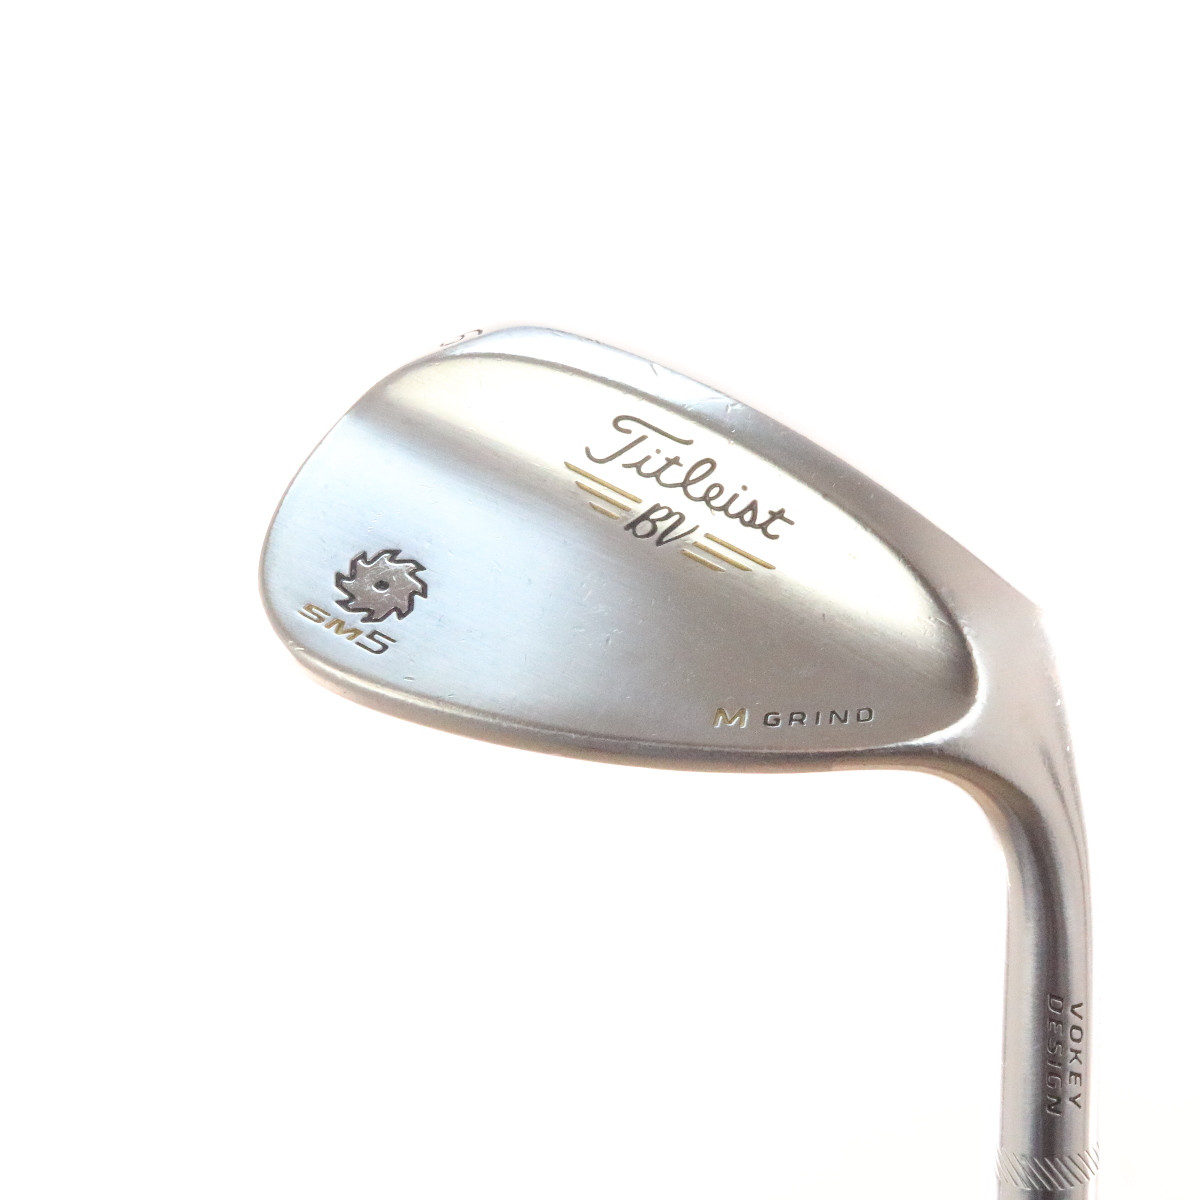 Titleist SM5 Tour Chrome Vokey Wedge 56 Degrees 56 10 Steel Shaft M Grind  51159G